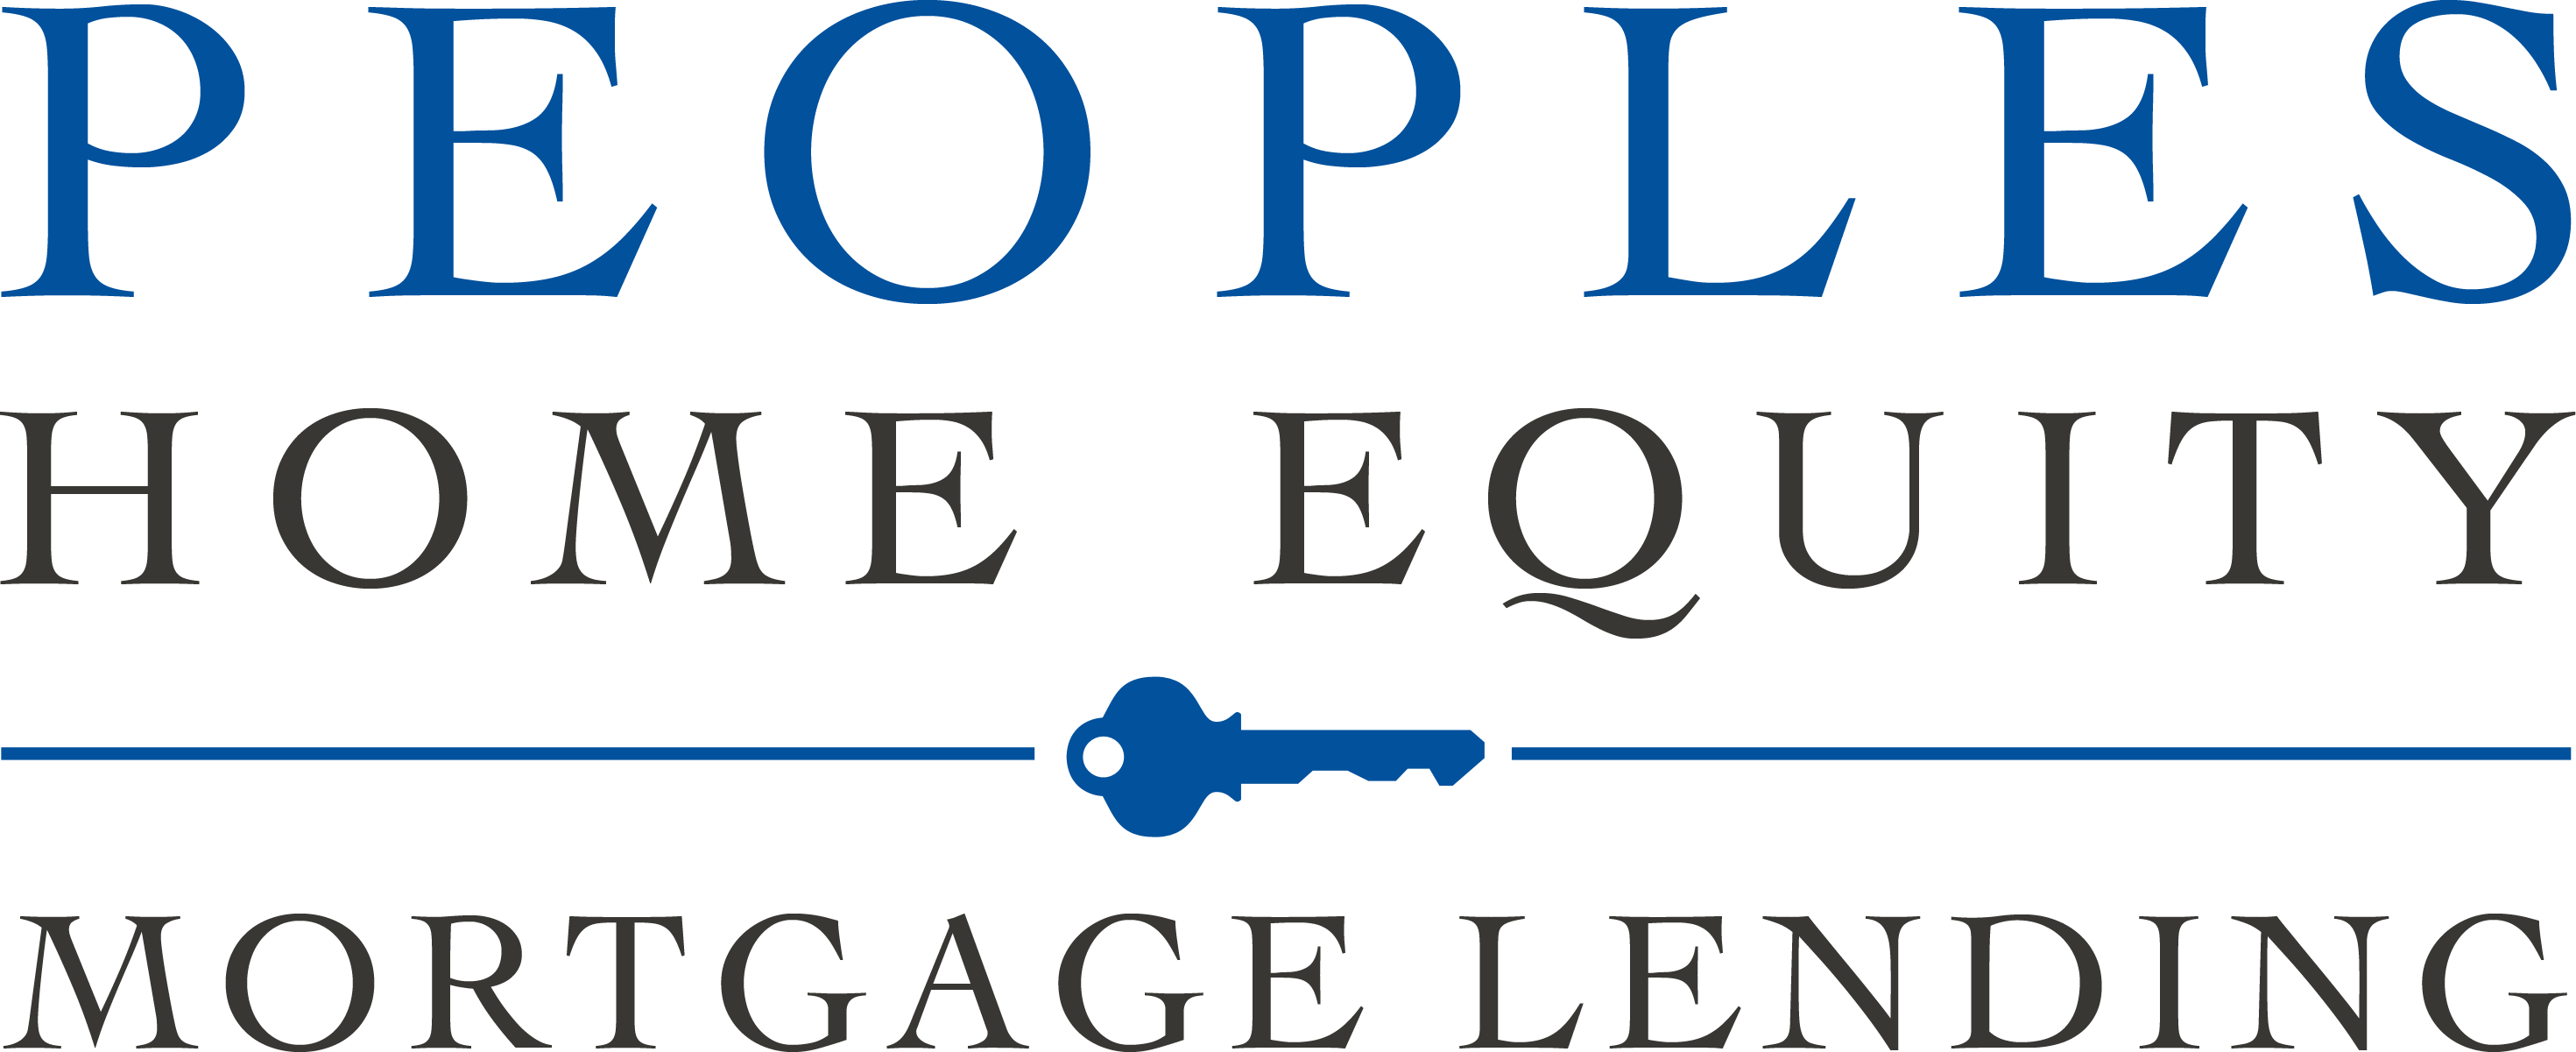 Peoples Home Equity, Inc.